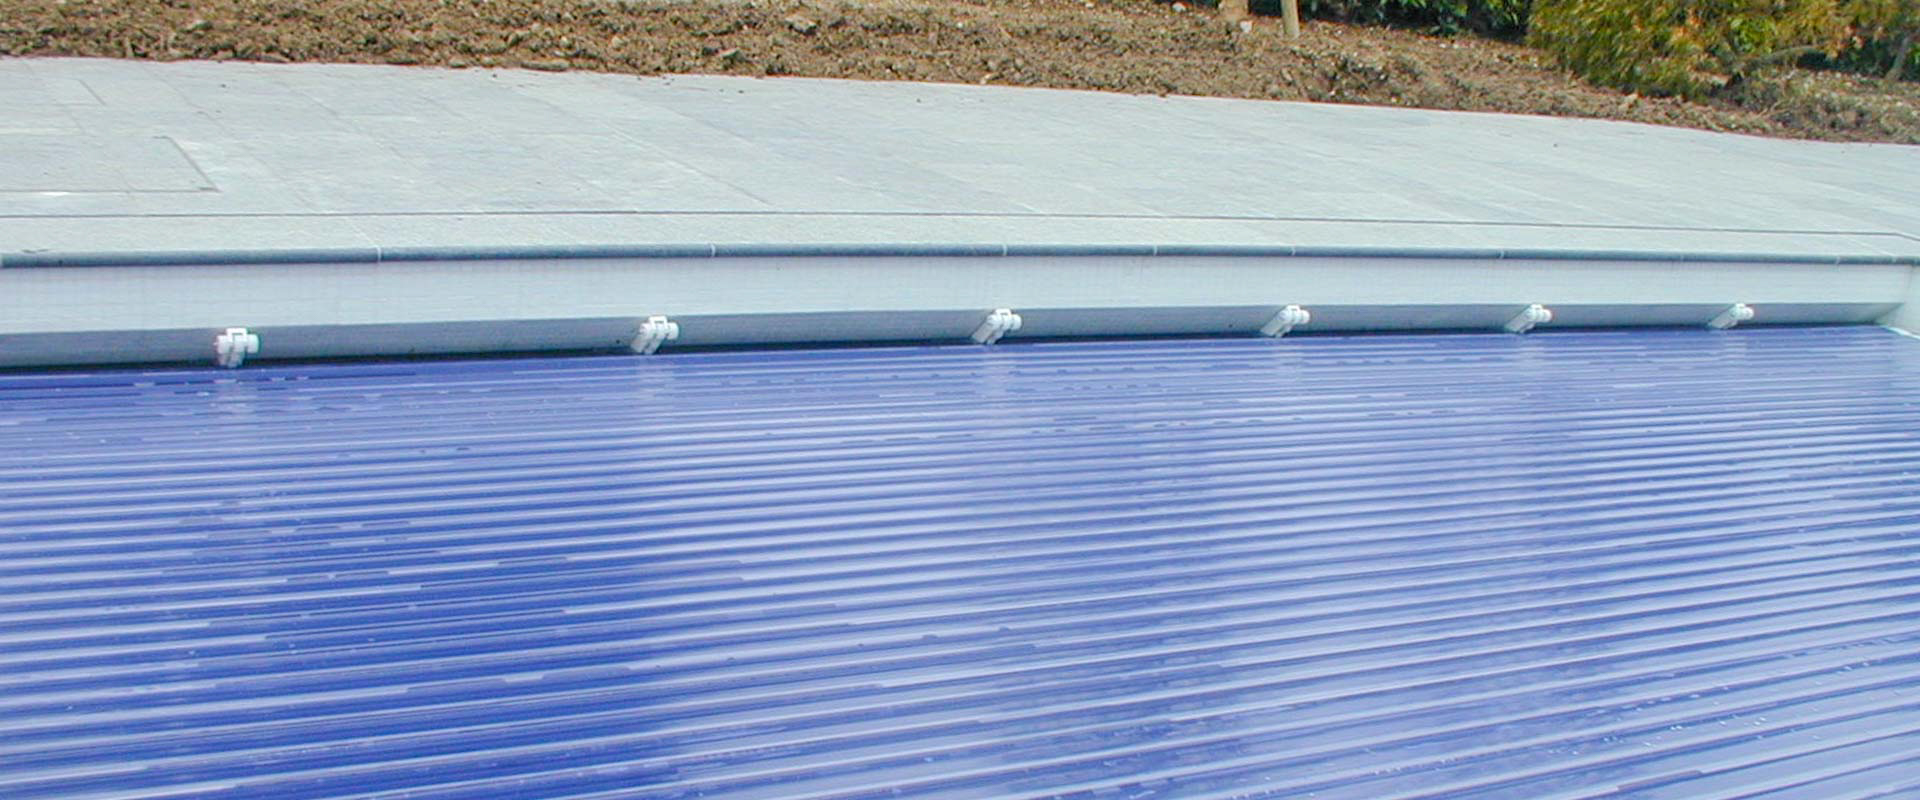 Automatic Rigid Pool Cover System Type Ibs 5 Grando